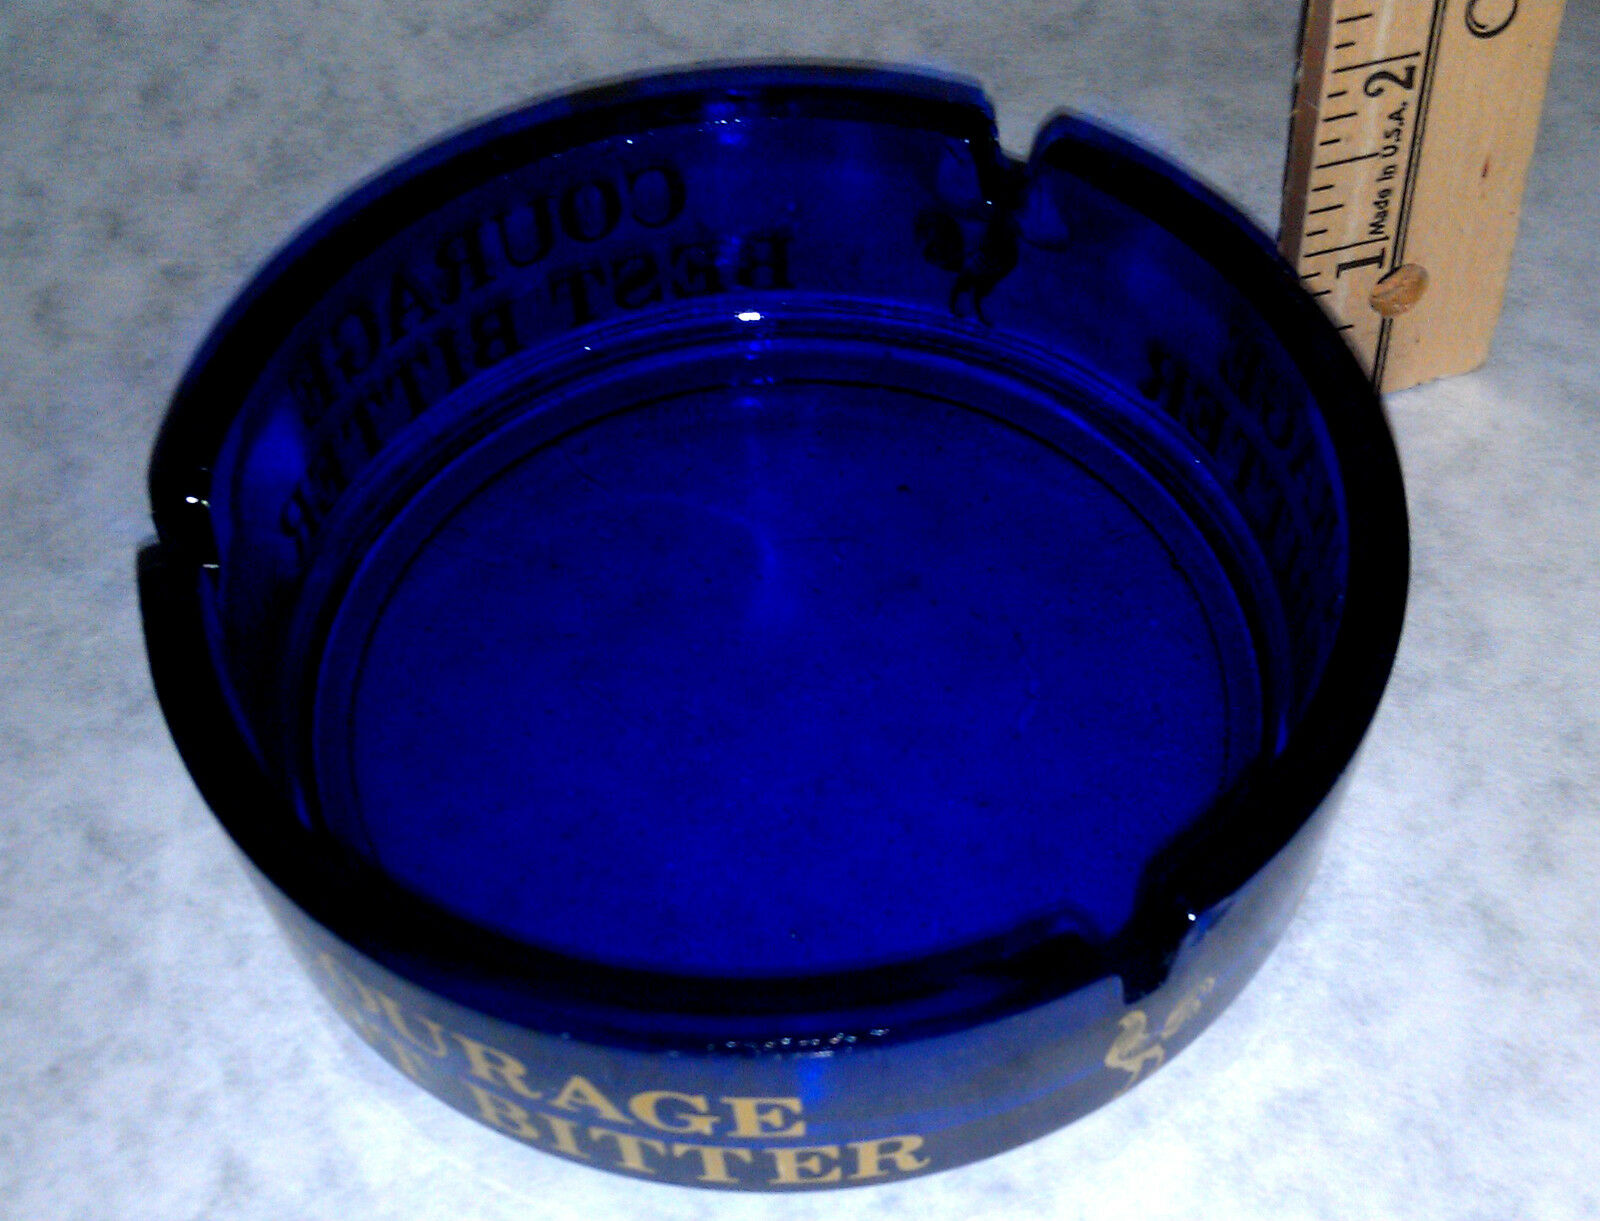 Courage Best Bitter with Rooster emblem Ash Tray Ashtray Vintage collectible New